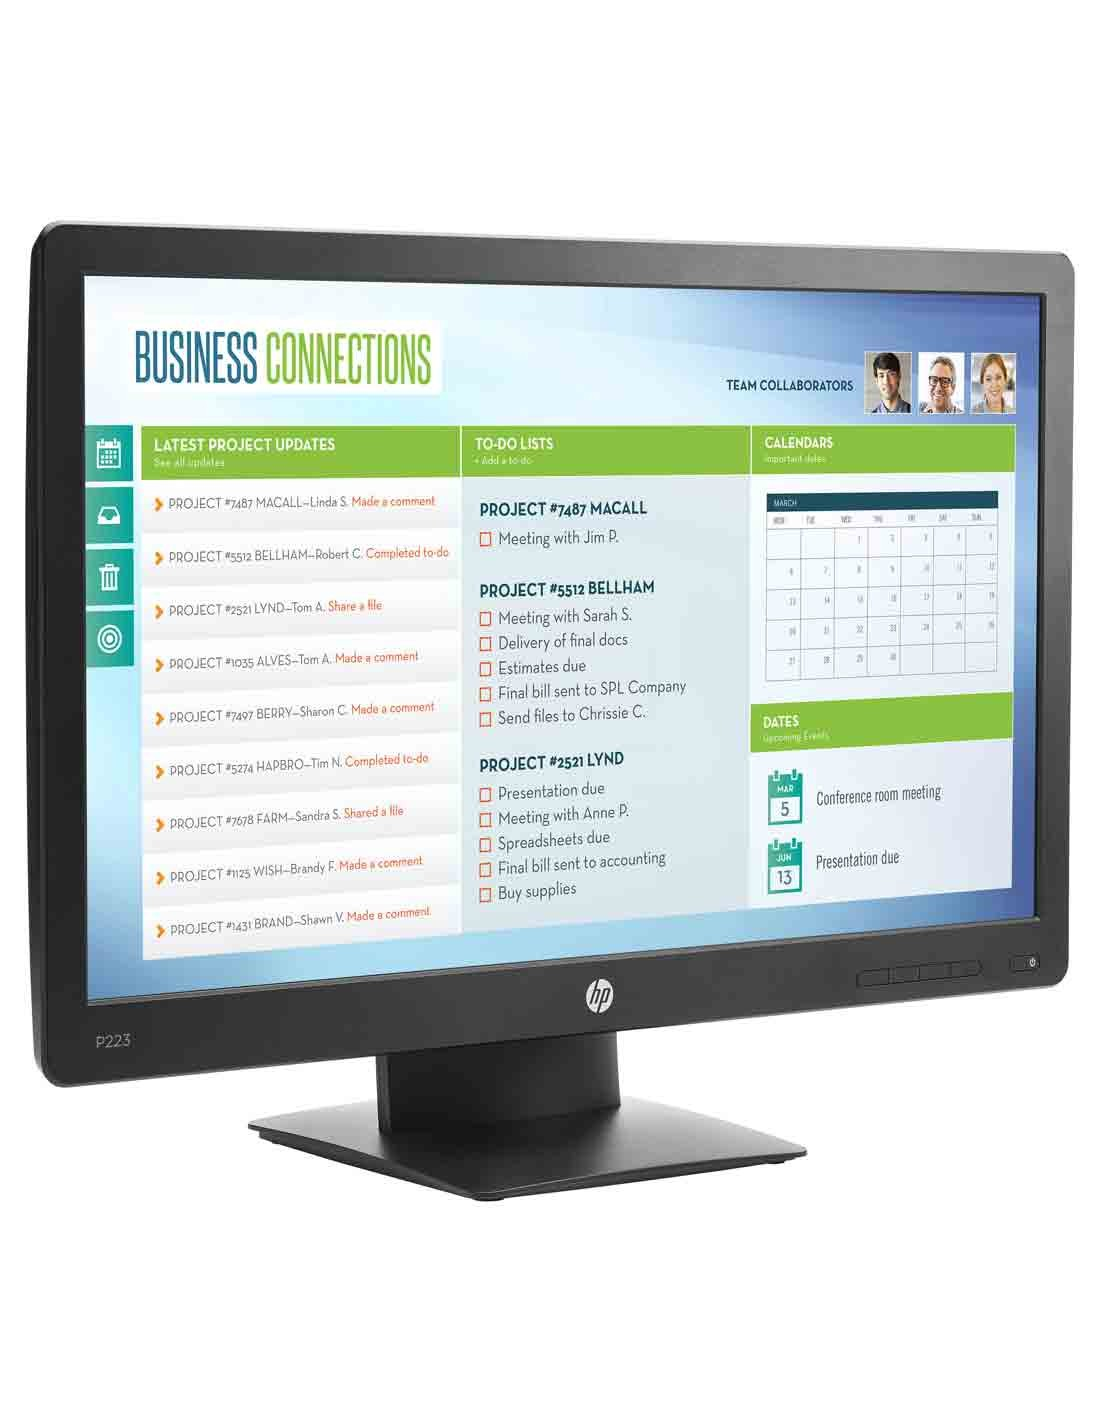 HP ProDisplay P223 21.5-inch Monitor images